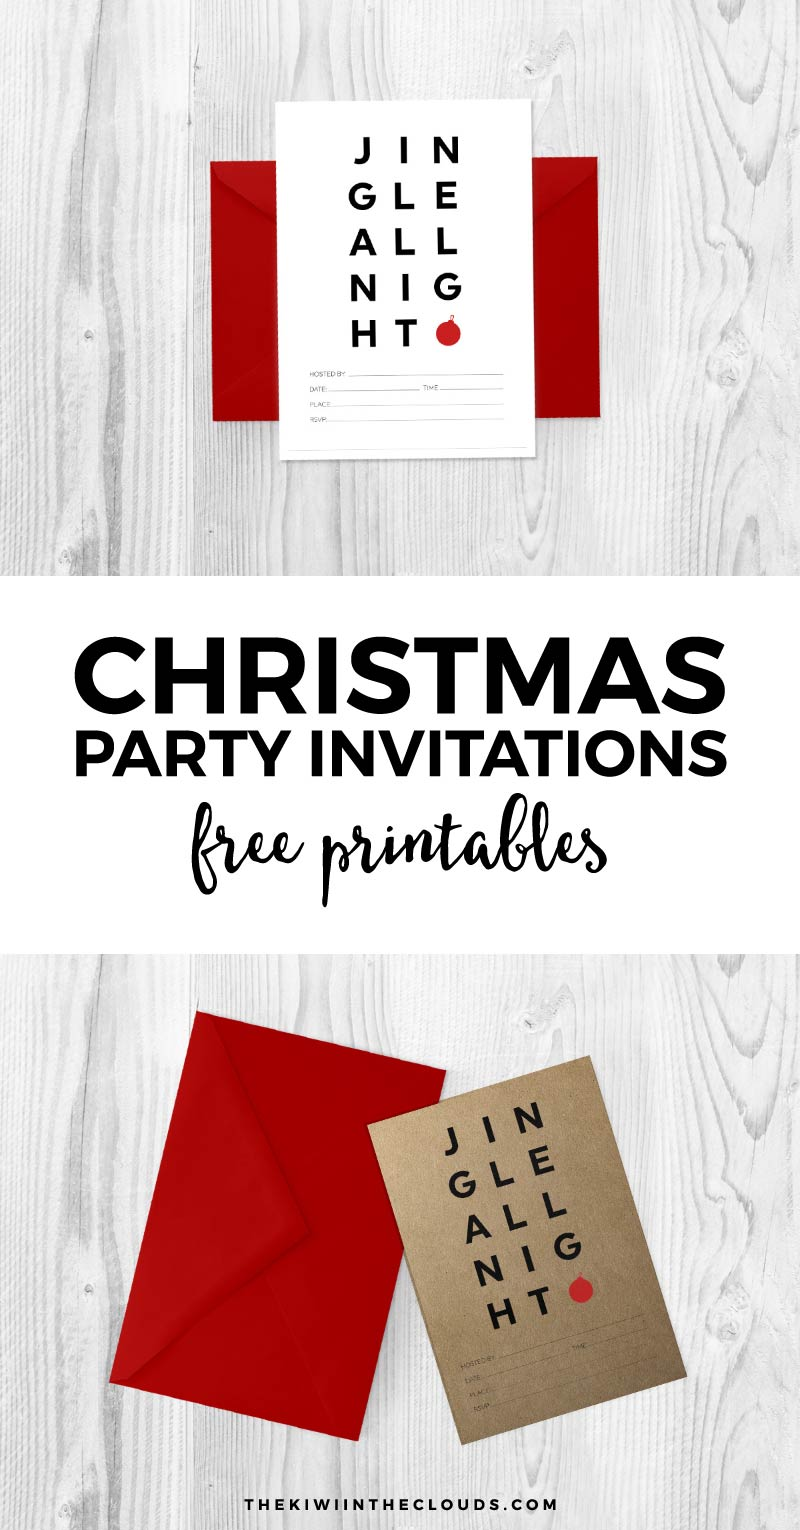 Download these free printable Christmas invitations to set the tone for a modern and simple holiday party.